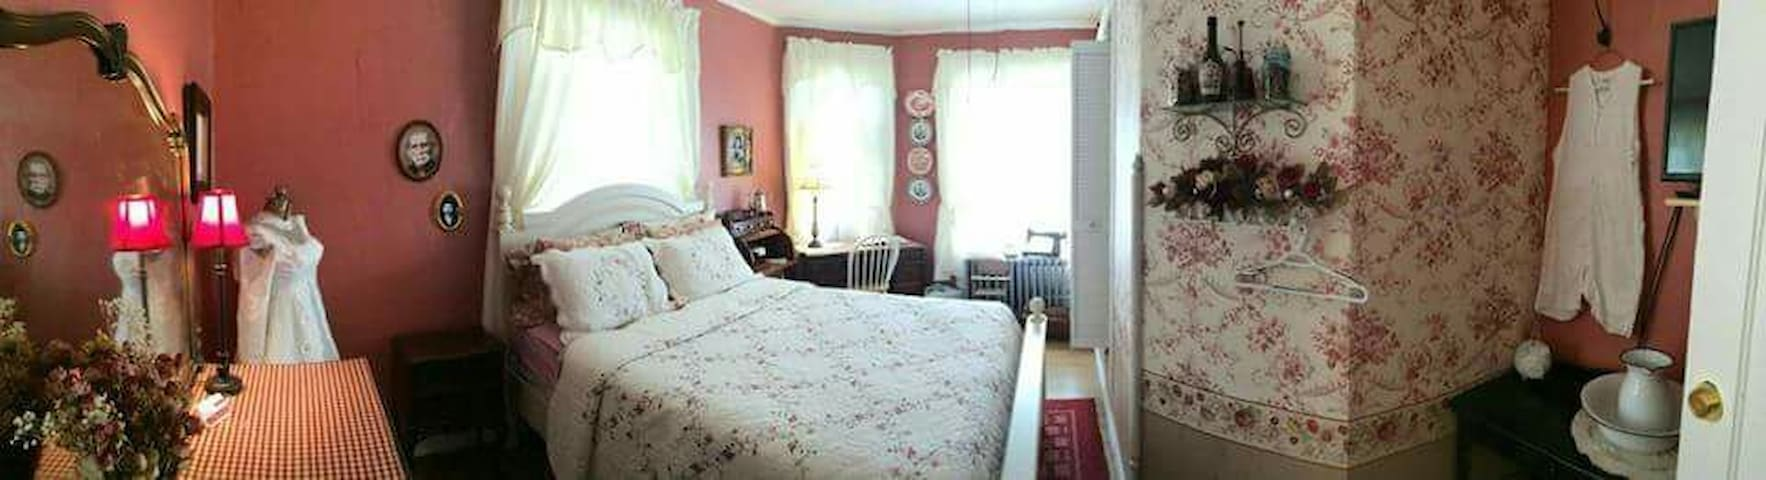 Roseanna McCoy room - Williamson - Bed & Breakfast